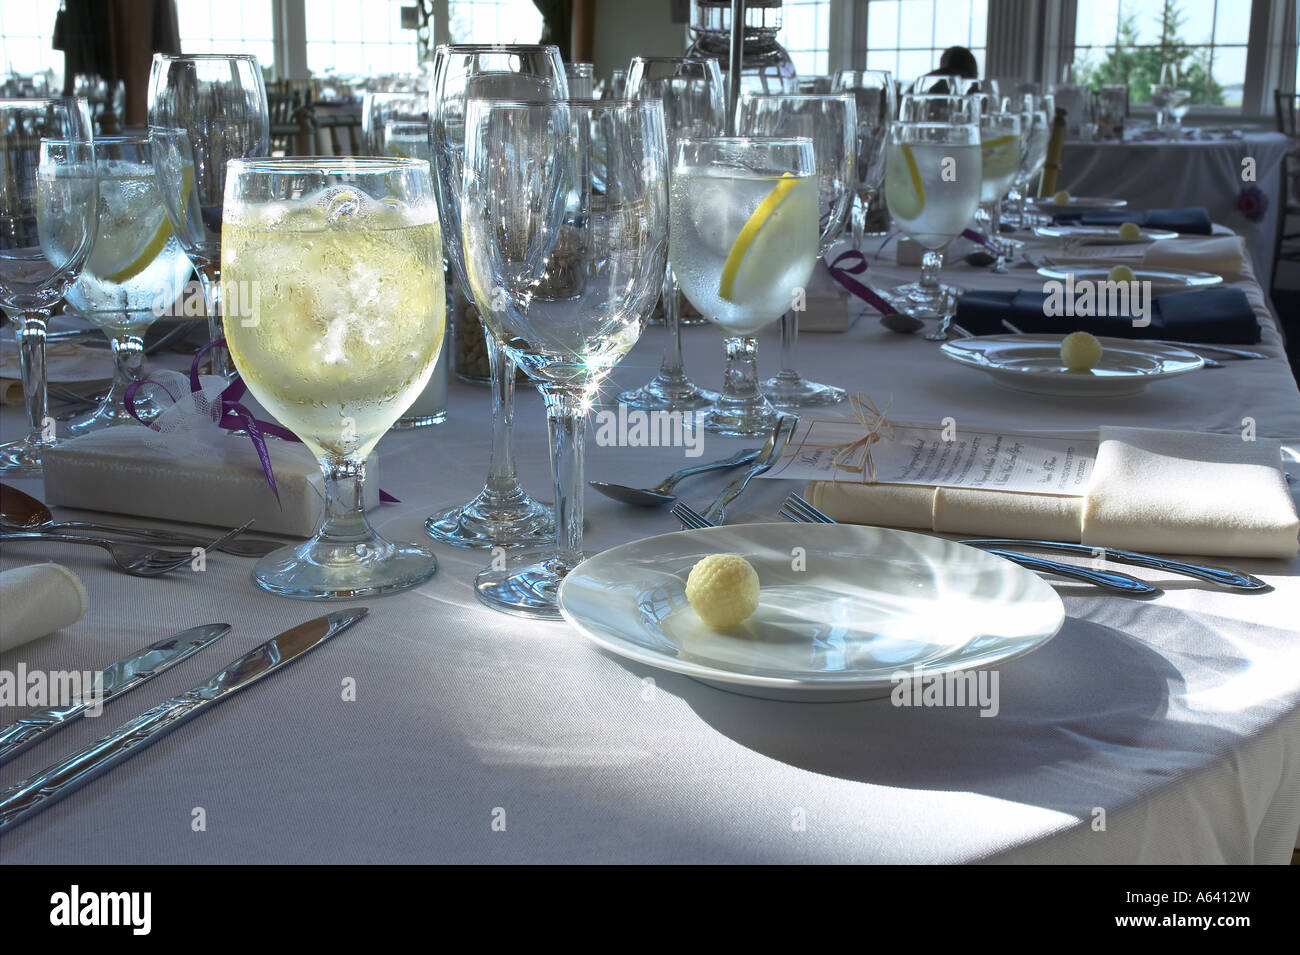 Banquet Table Detail View Of Empty Drinking Glasses Before Wedding Celebration Event  USA Stock Photo